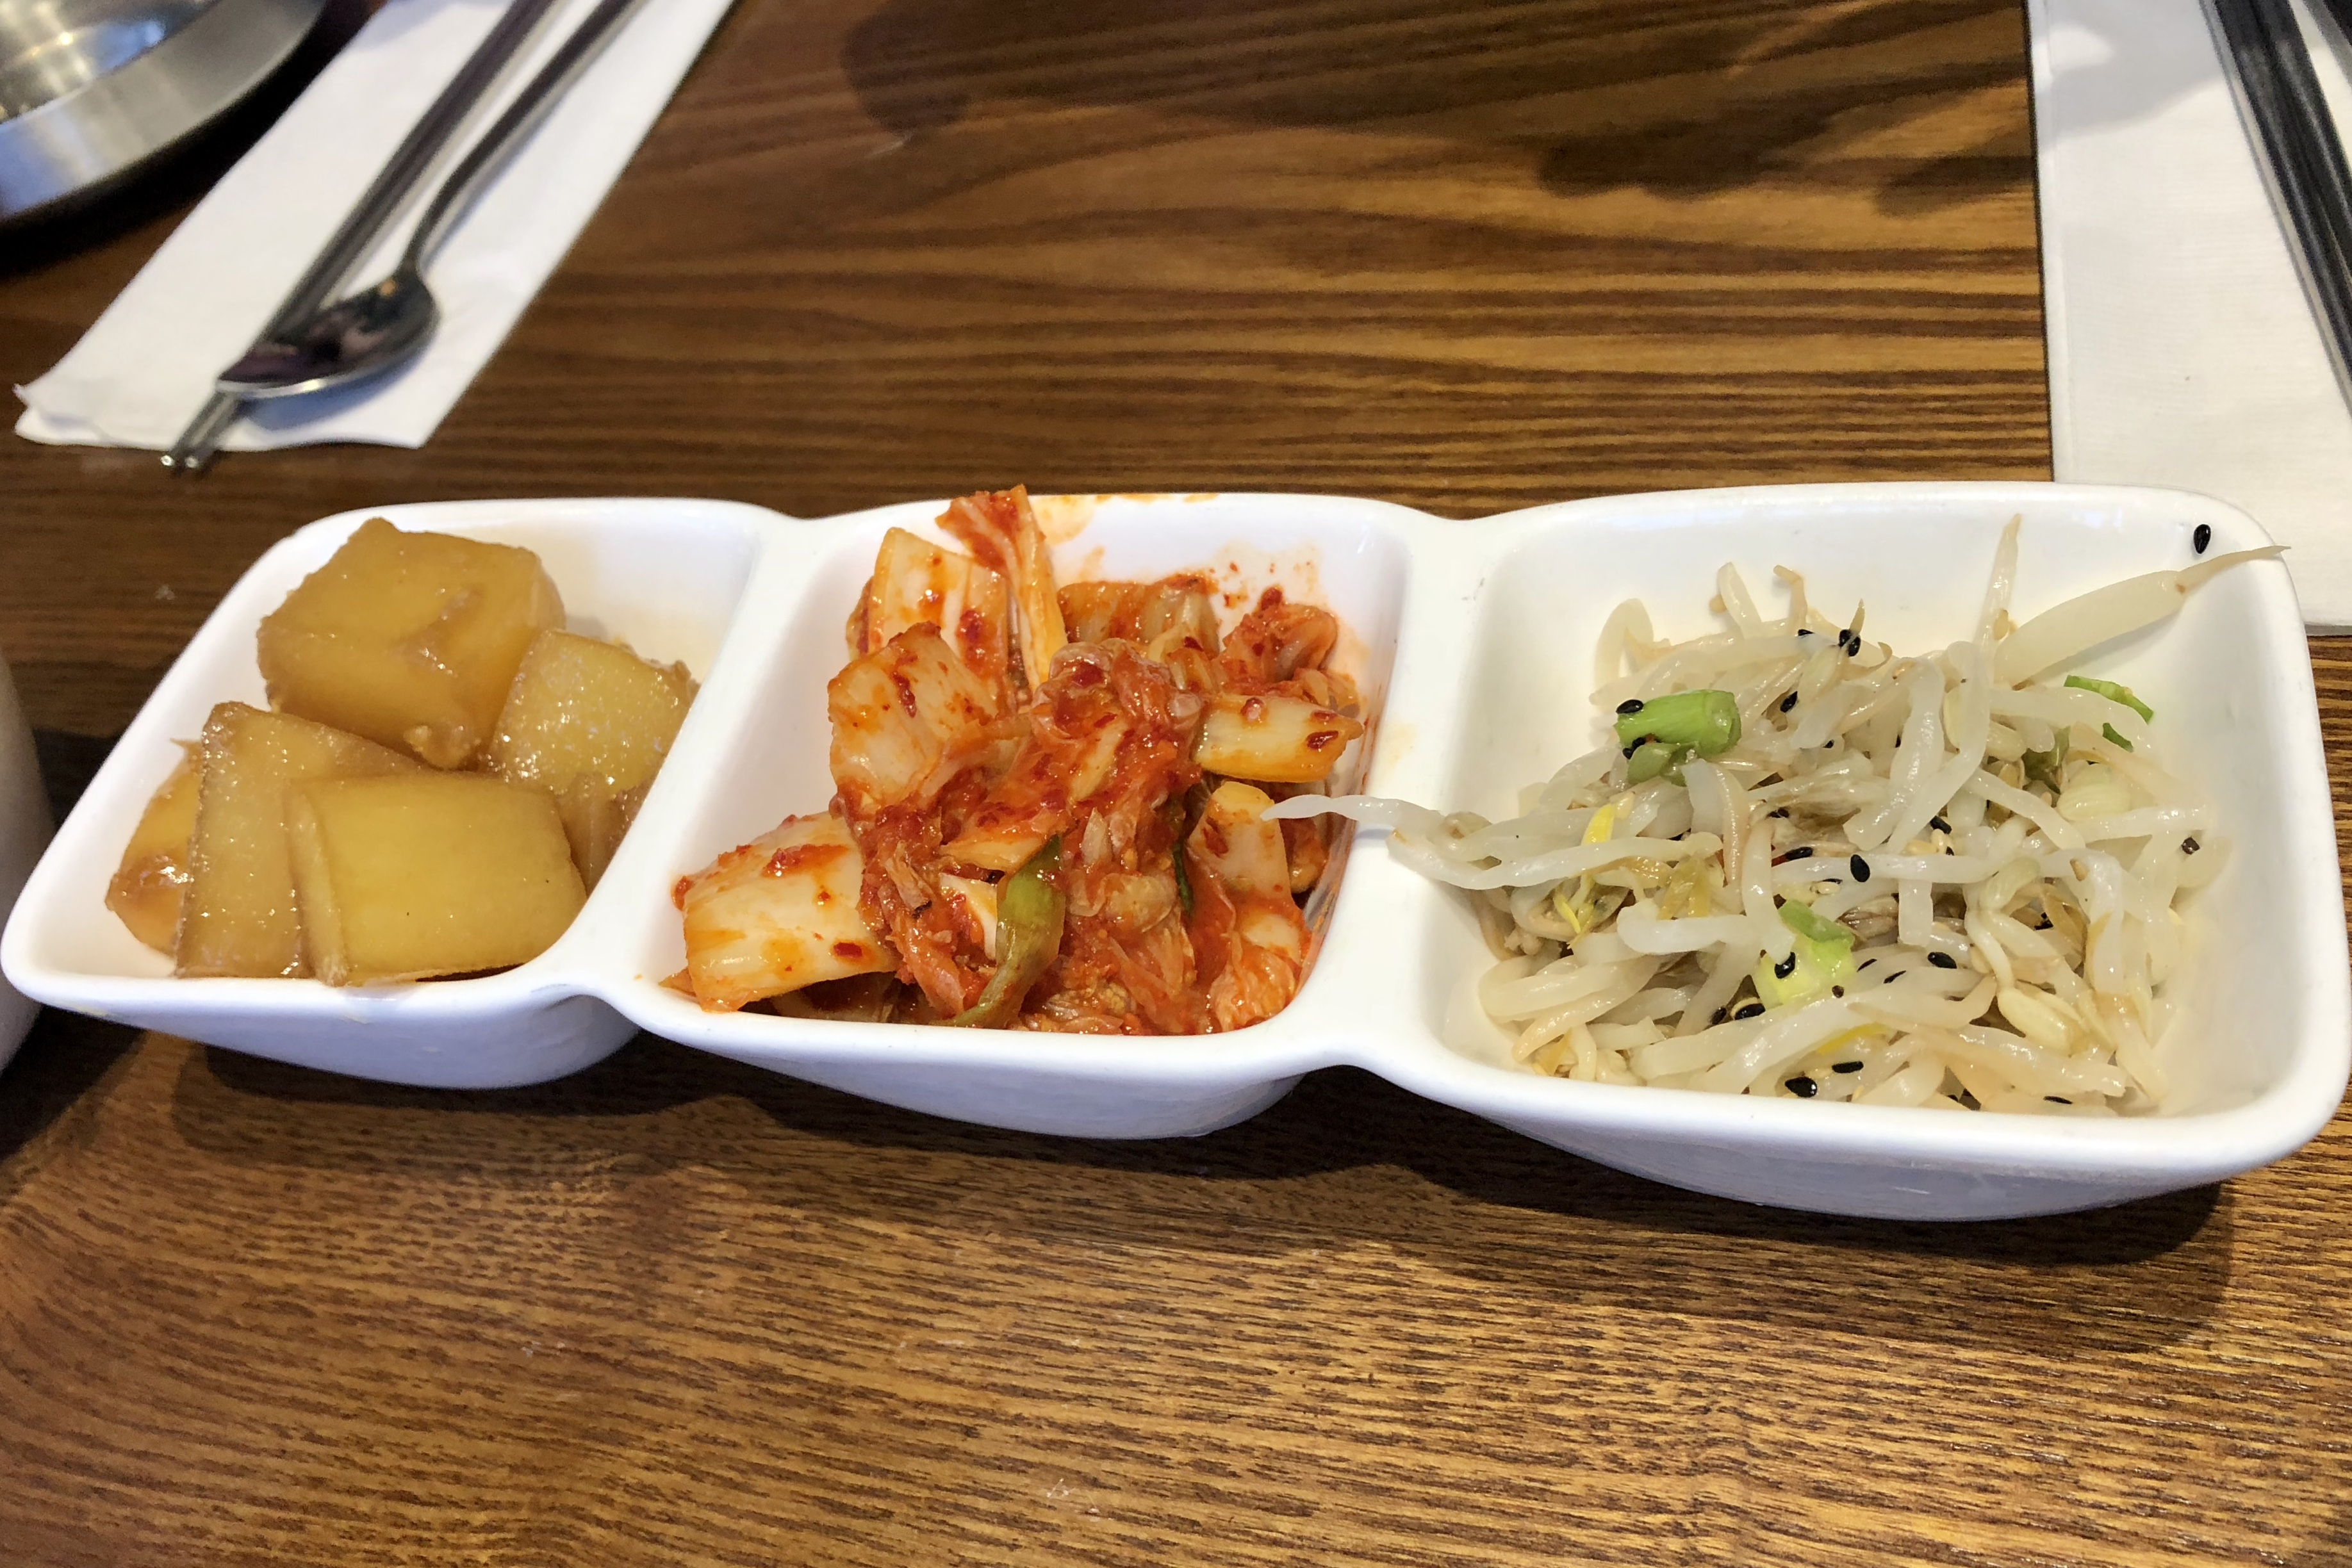 Classic Table Side Dishes Newly Opened In Richmond Daan Korean Cuisine Serves Typical But